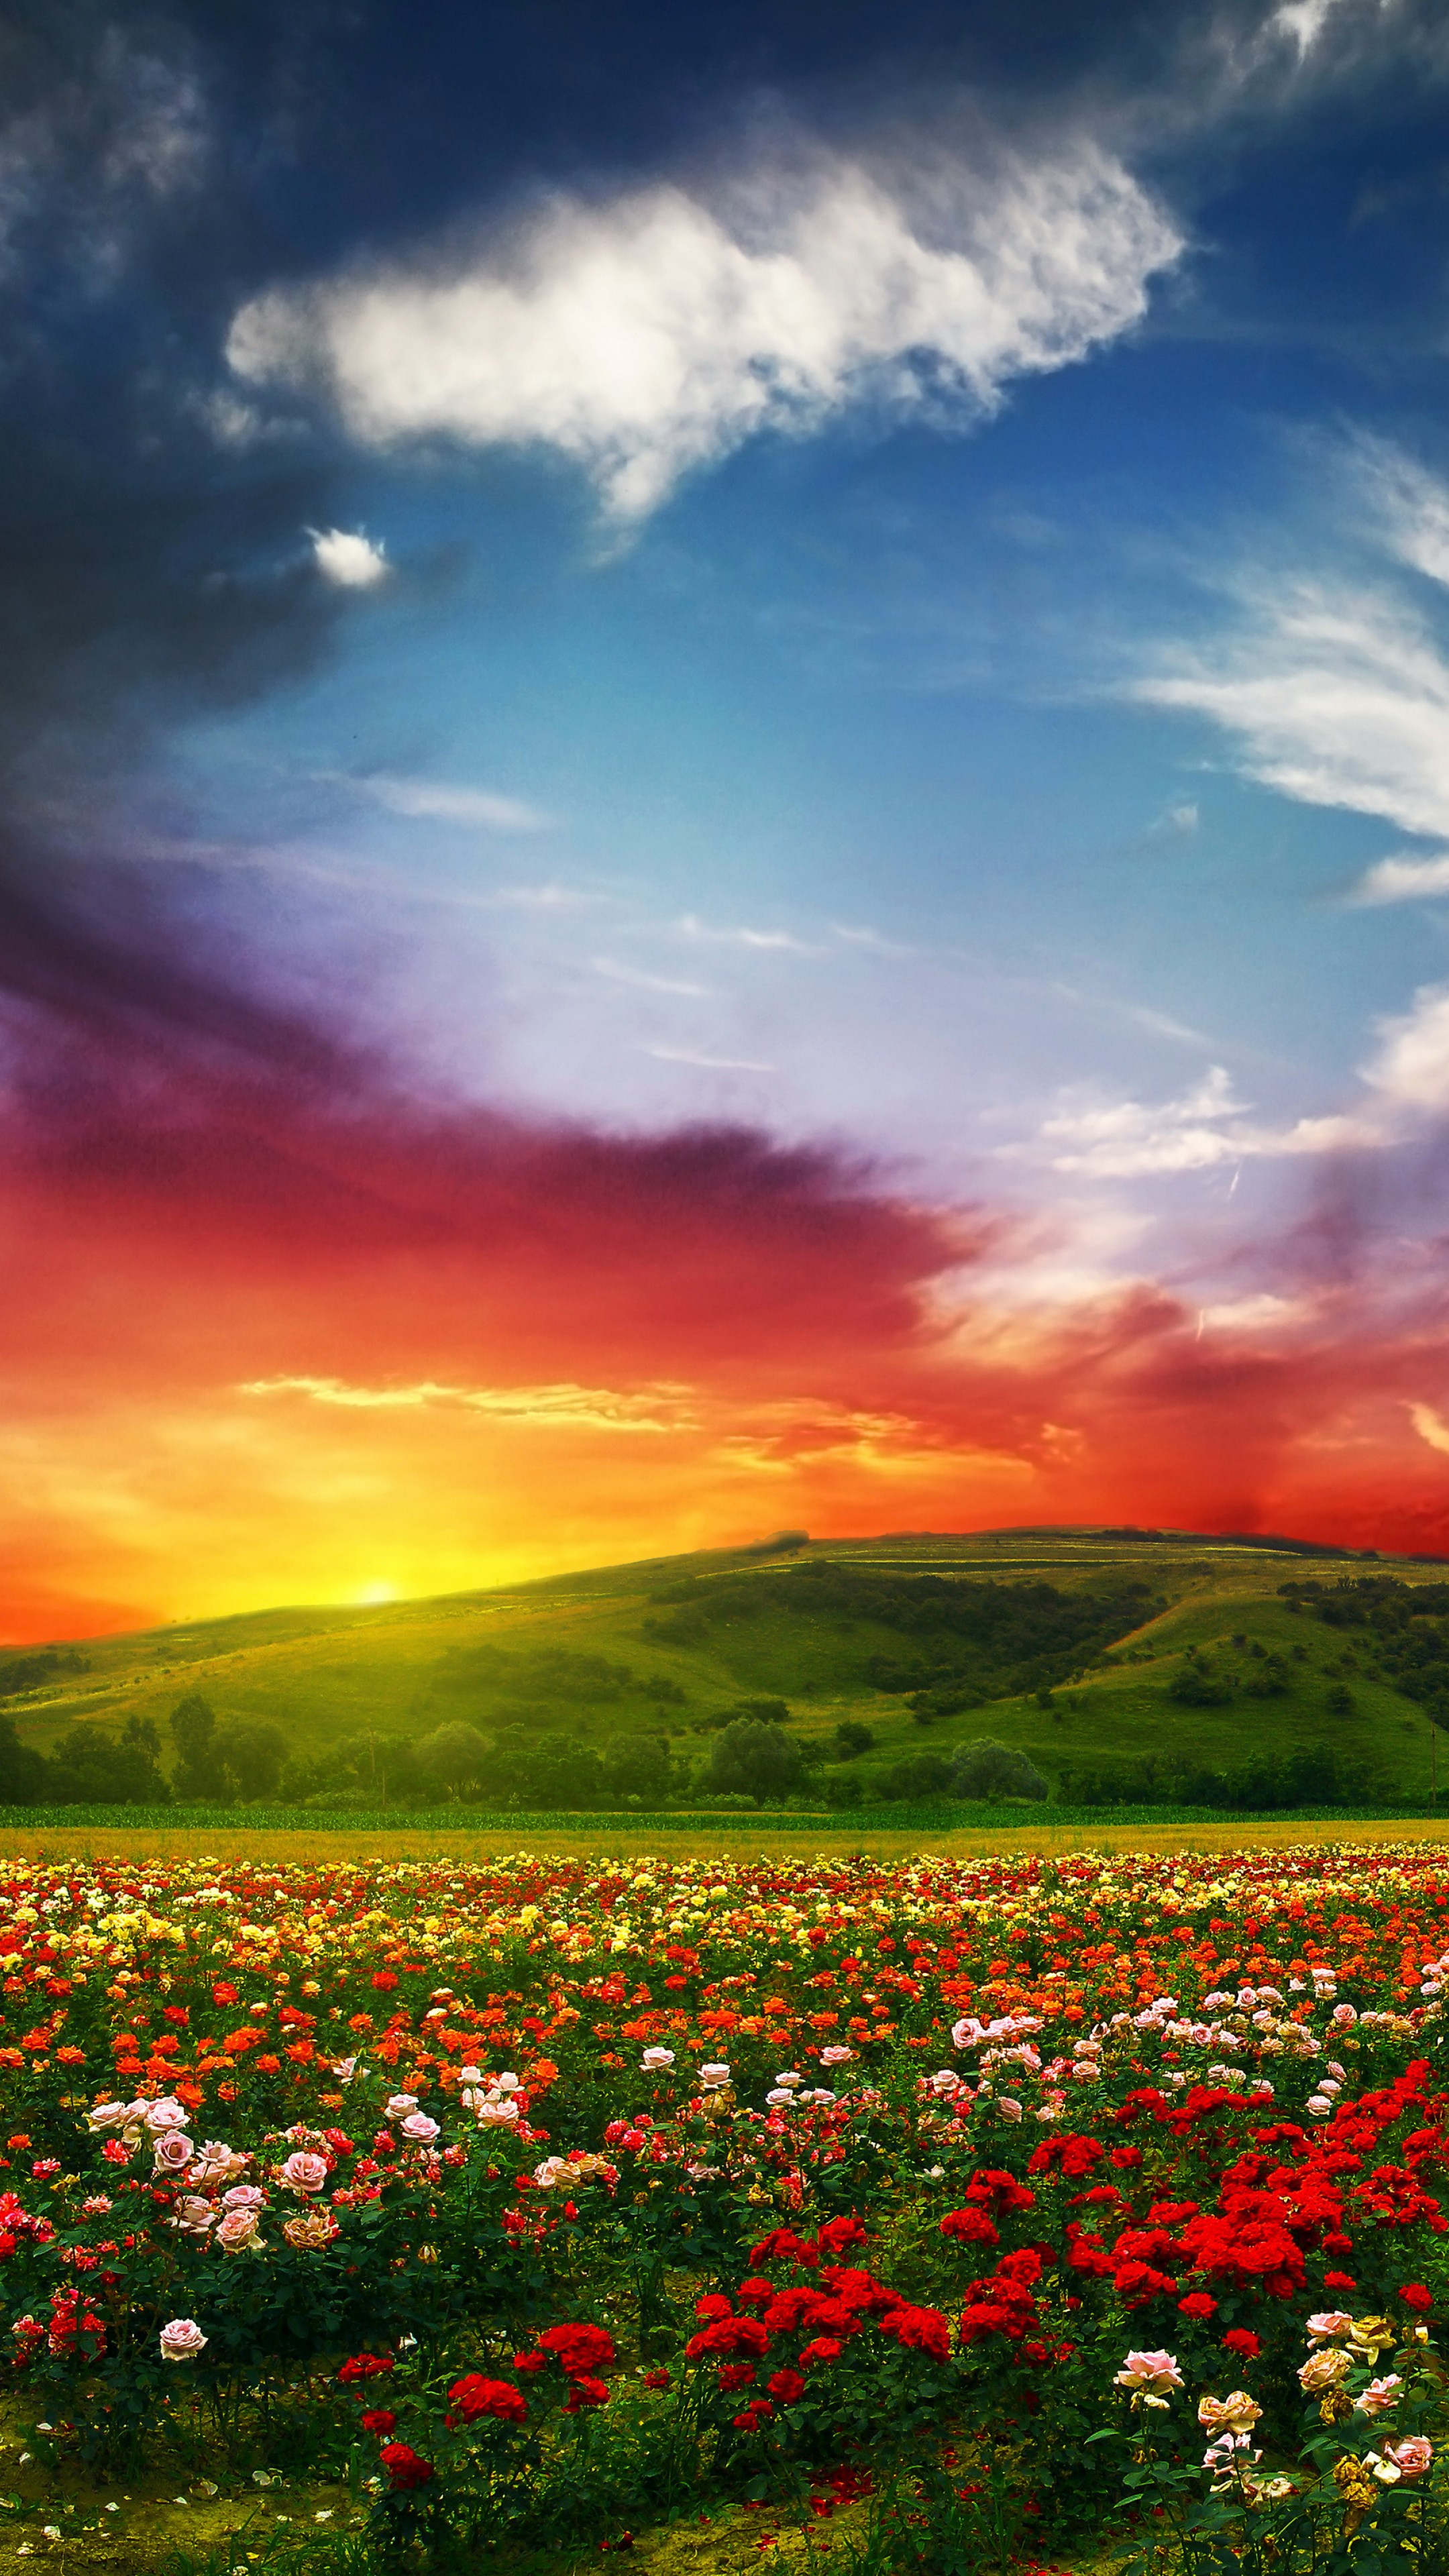 Wallpaper India 5k 4k Wallpaper Valley Of Flowers Meadows Roses Sunset Clouds Nature 5310